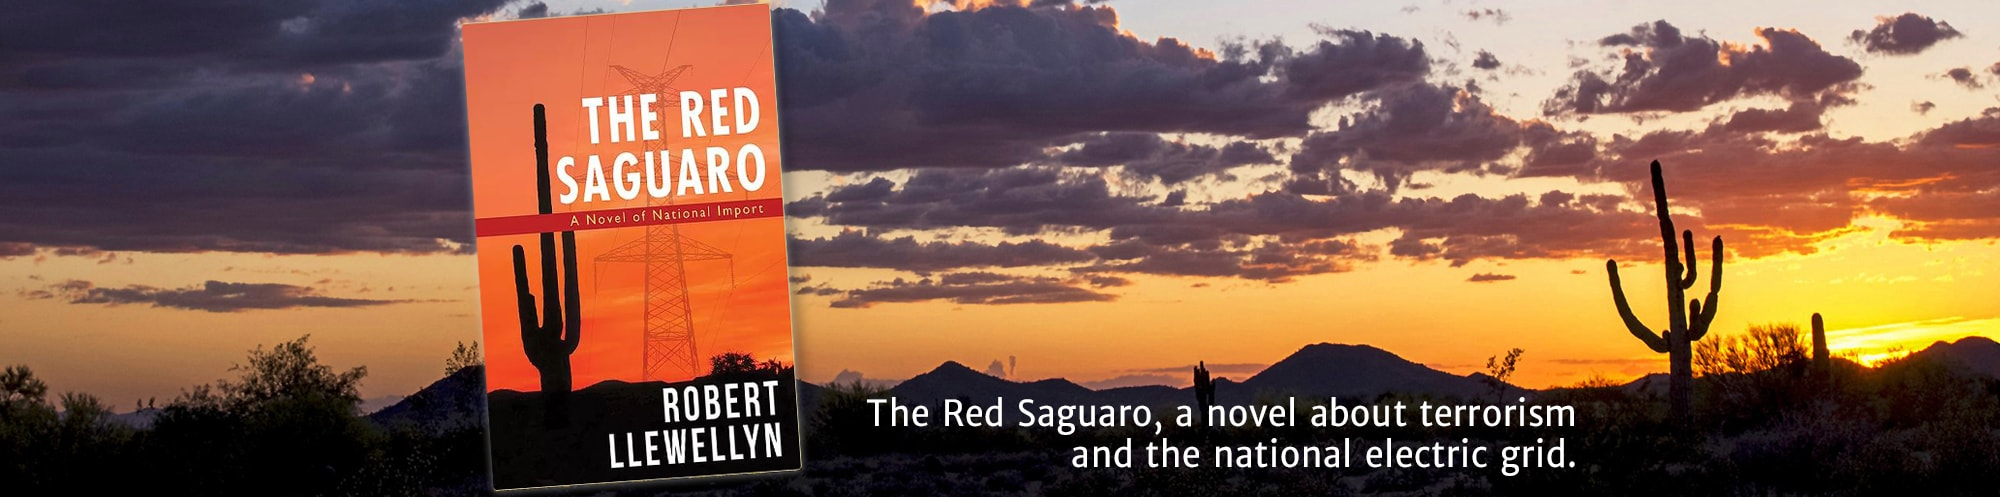 The Red Saguaro, a novel about terrorism and the national electric grid